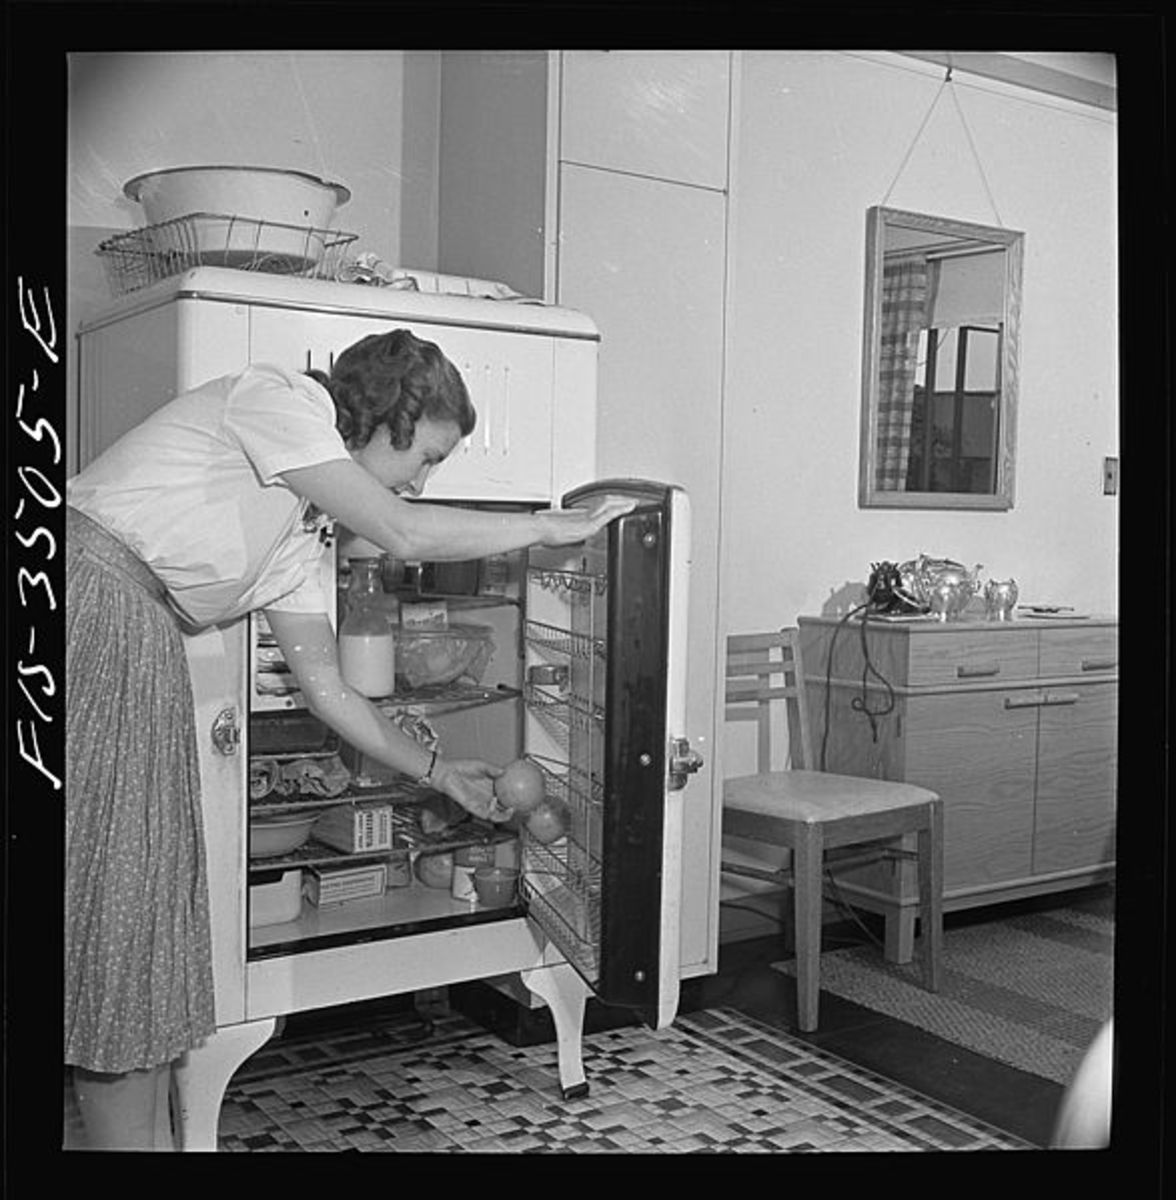 Old fashioned ice boxes would often use actual ice to keep the refrigerator cool.